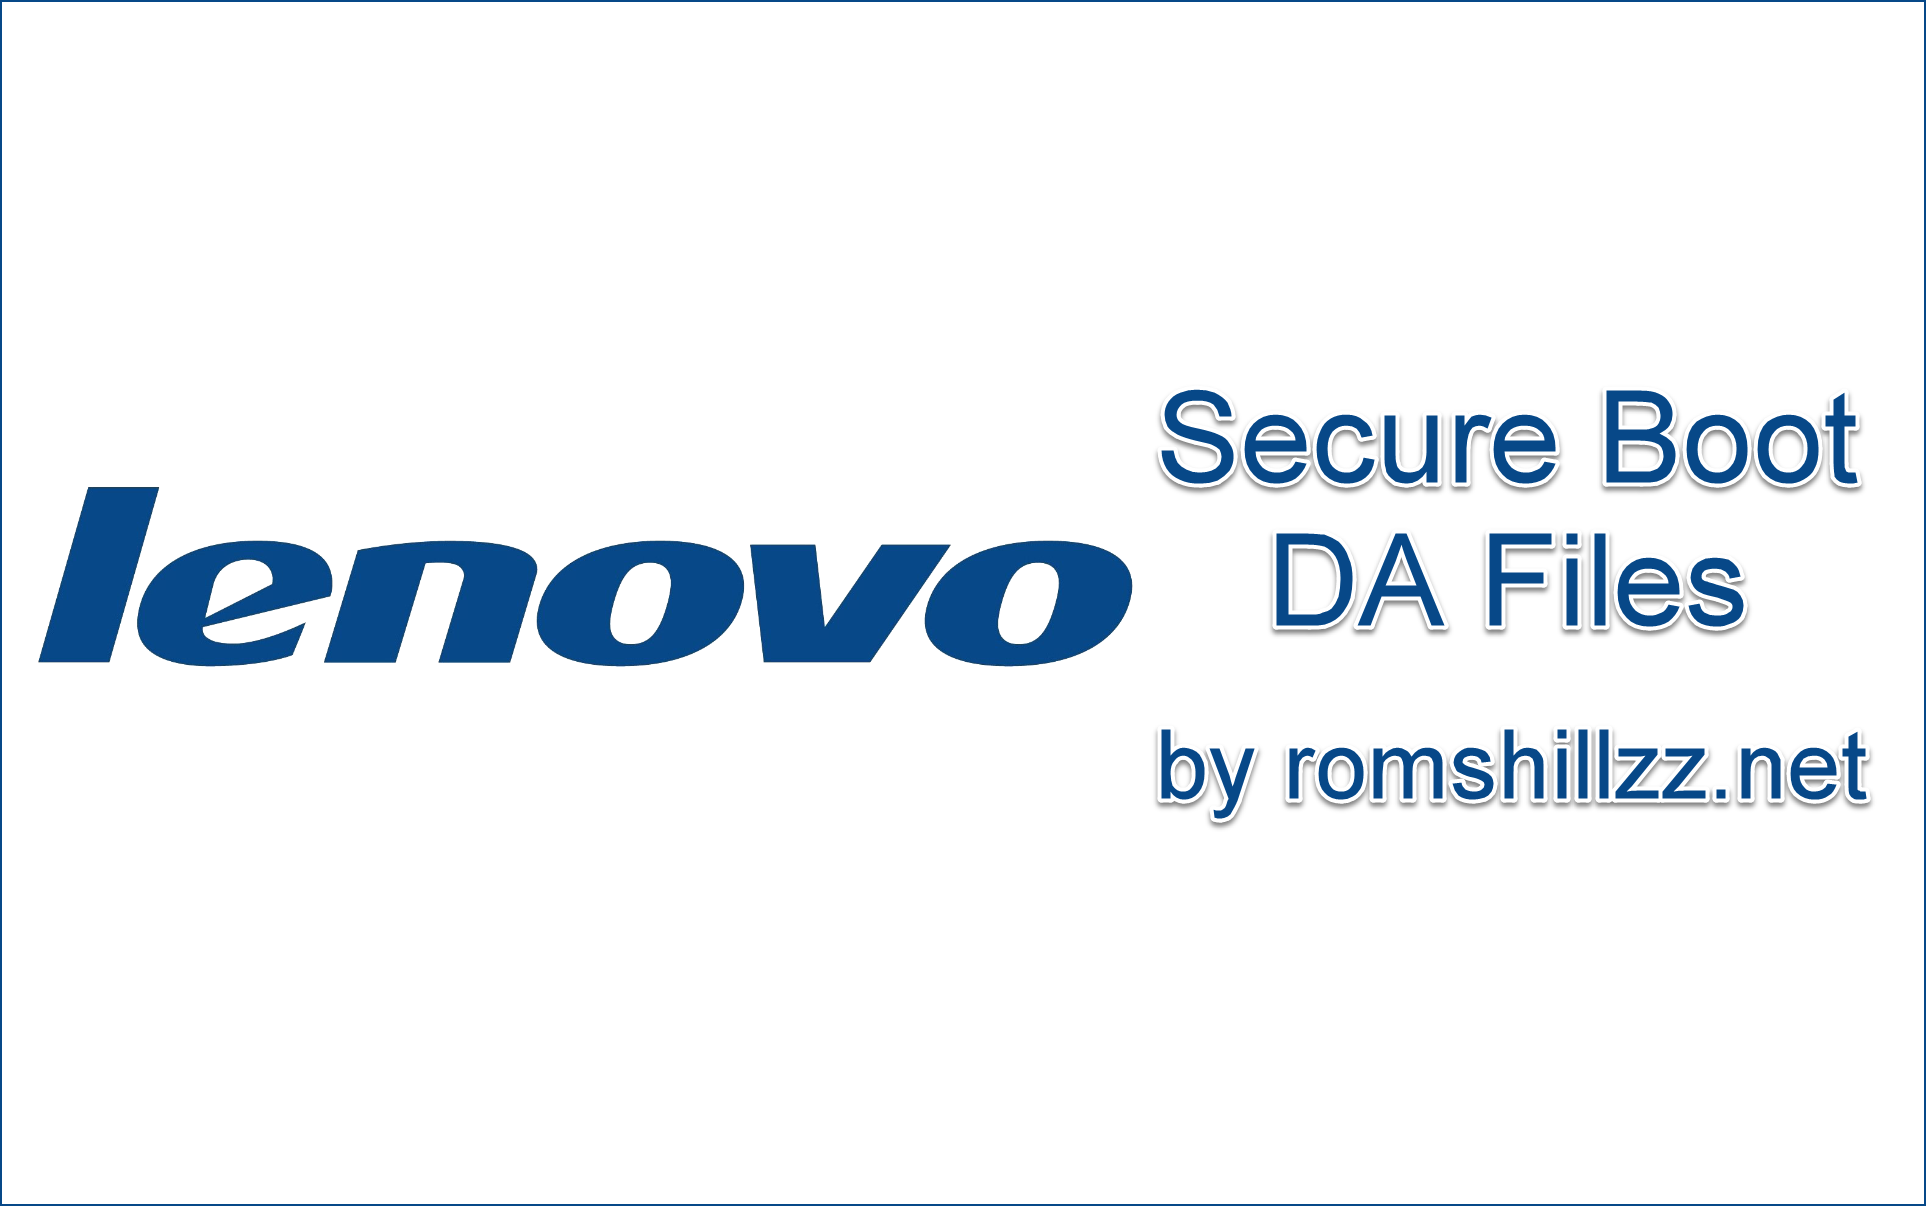 lenovo-secure-boot.png